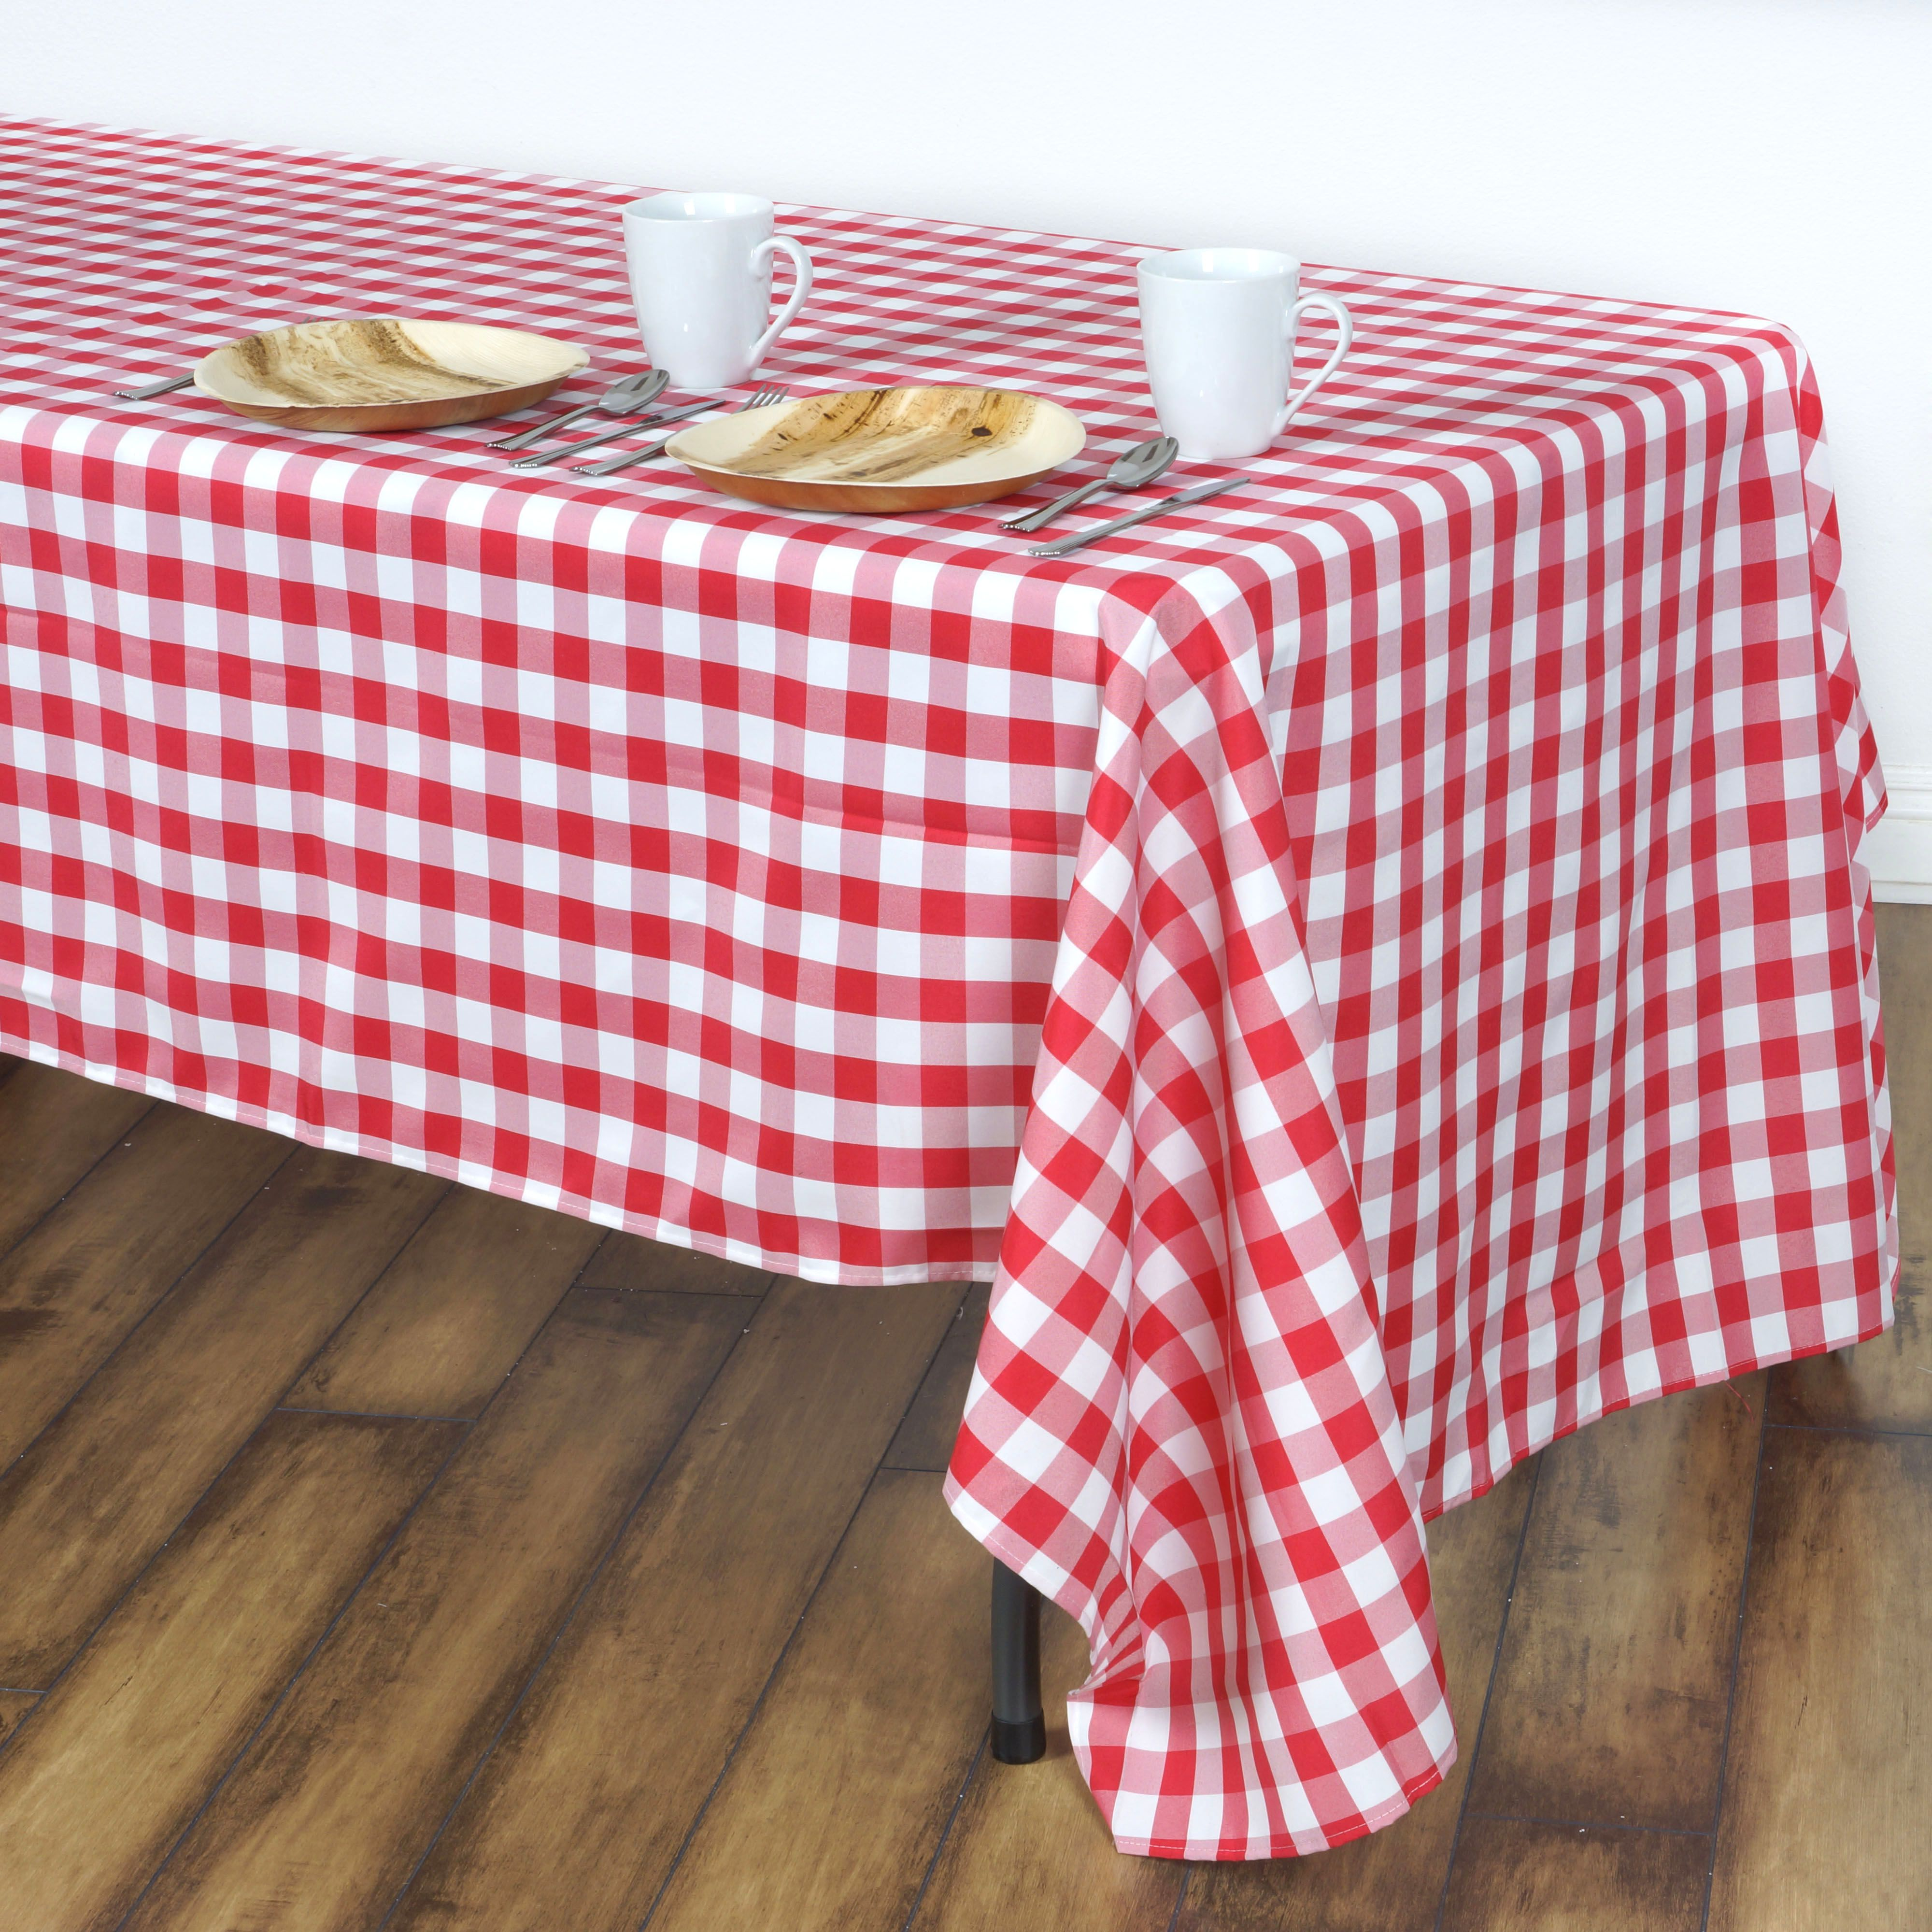 Efavormart Perfect Picnic Inspired Checkered 60x102 Polyester Rectangle Tablecloths For Kitchen Dining Catering Wedding Birthday Walmart Com In 2020 Checkered Tablecloth Table Cloth Plaid Tablecloth